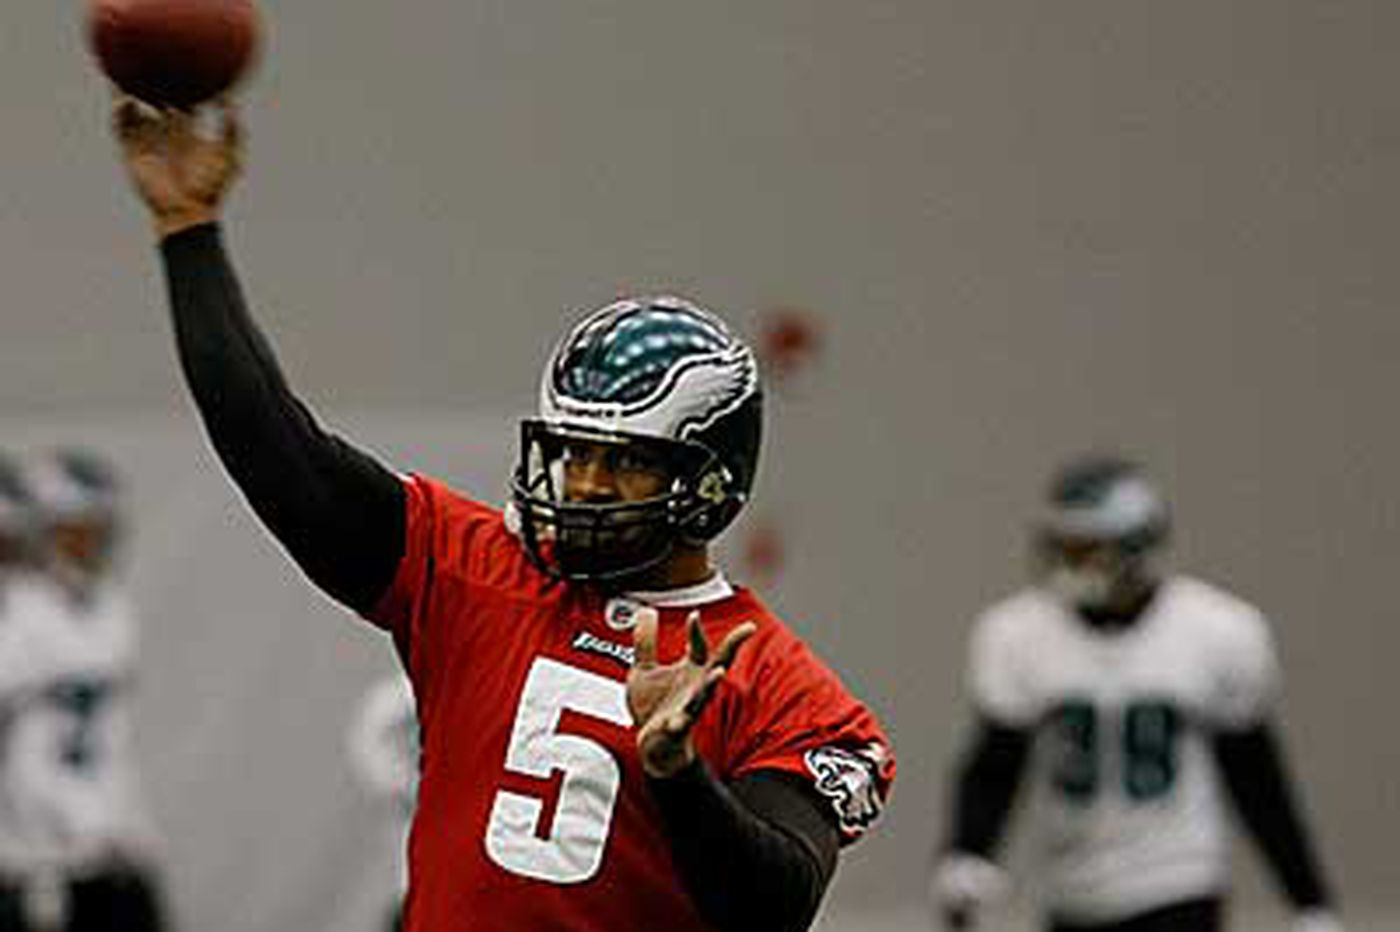 Eagles' McNabb has thrived under pressure in past